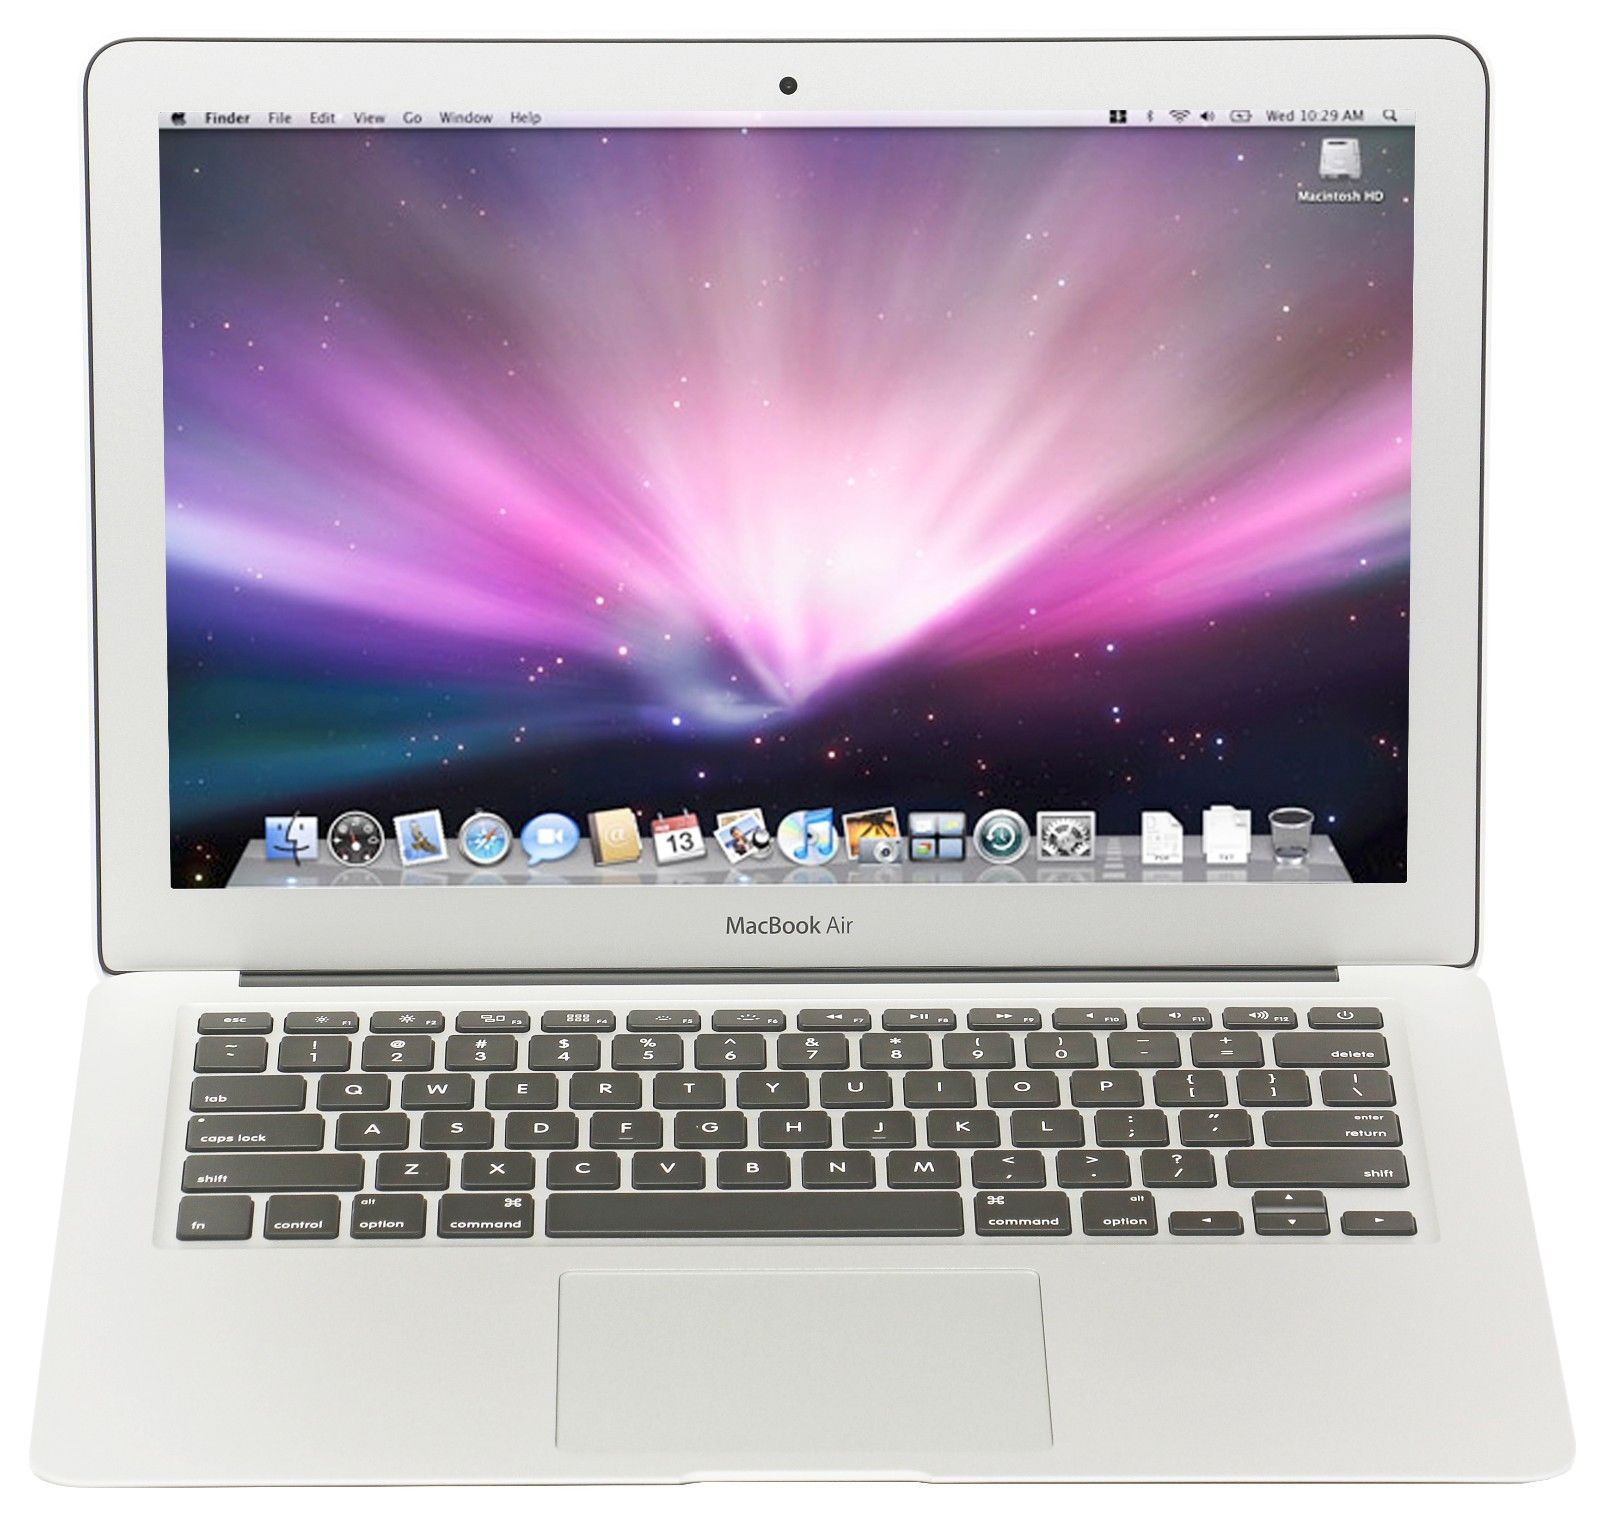 apple 13 inch macbook air mid 2017 1 8ghz core i5 8gb ram 128gb ssd mqd32ll a ebay. Black Bedroom Furniture Sets. Home Design Ideas